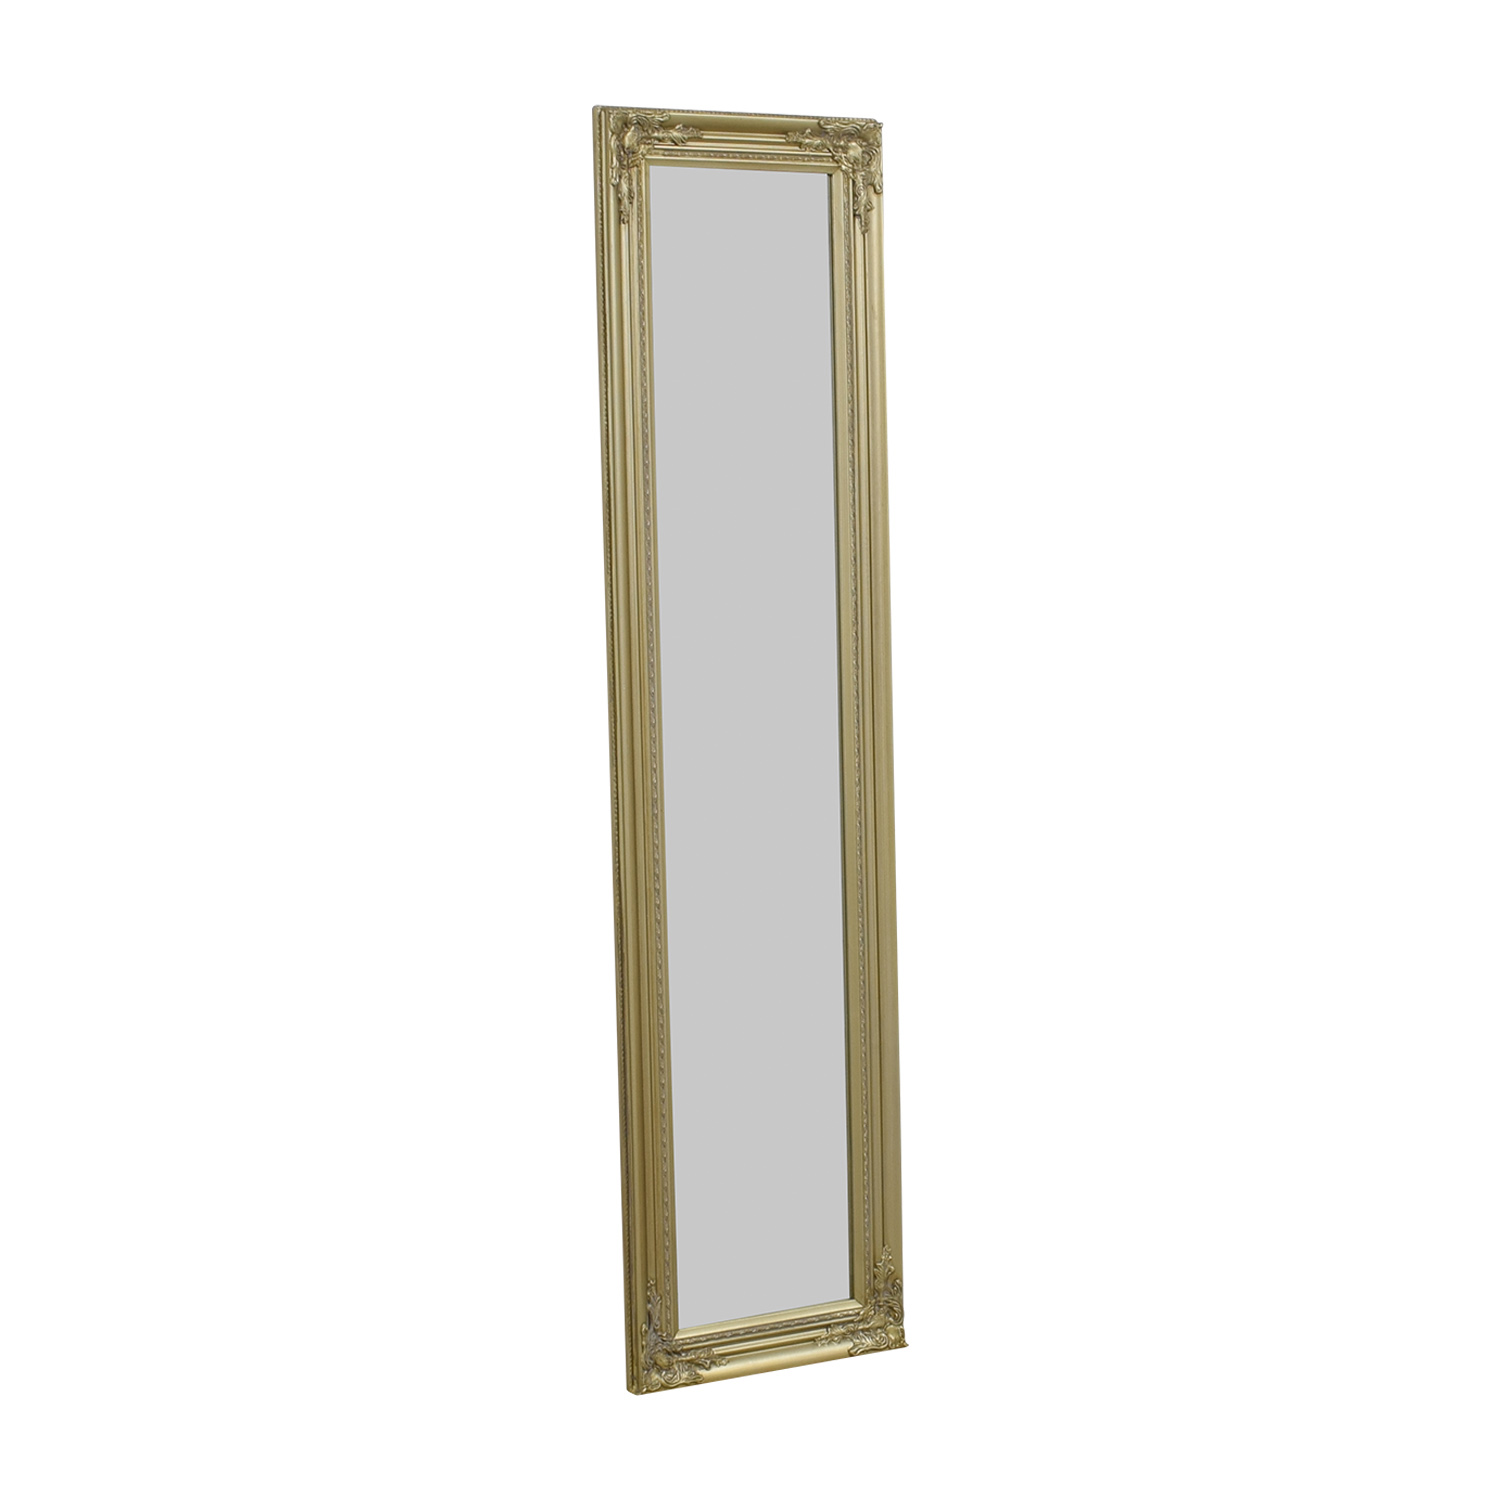 shop Full Length Ornate Gold Mirror